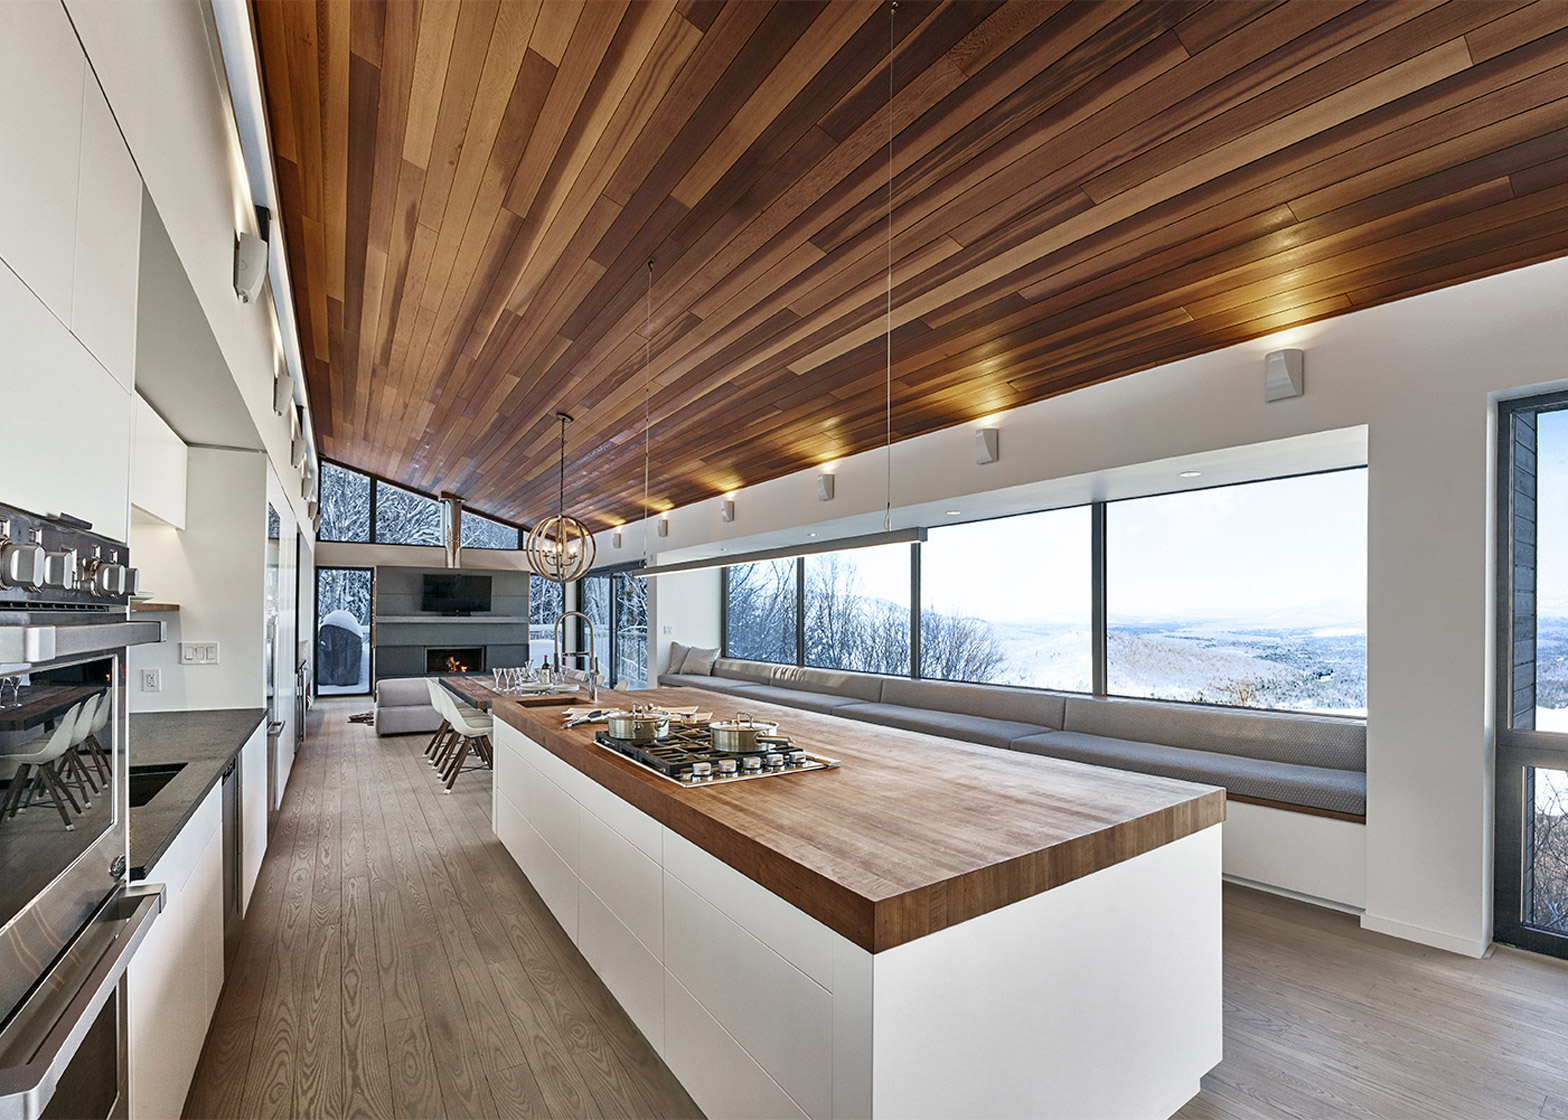 Ski Chalet Interior Design robitaille curtis places a ski chalet on a steep slope in quebec